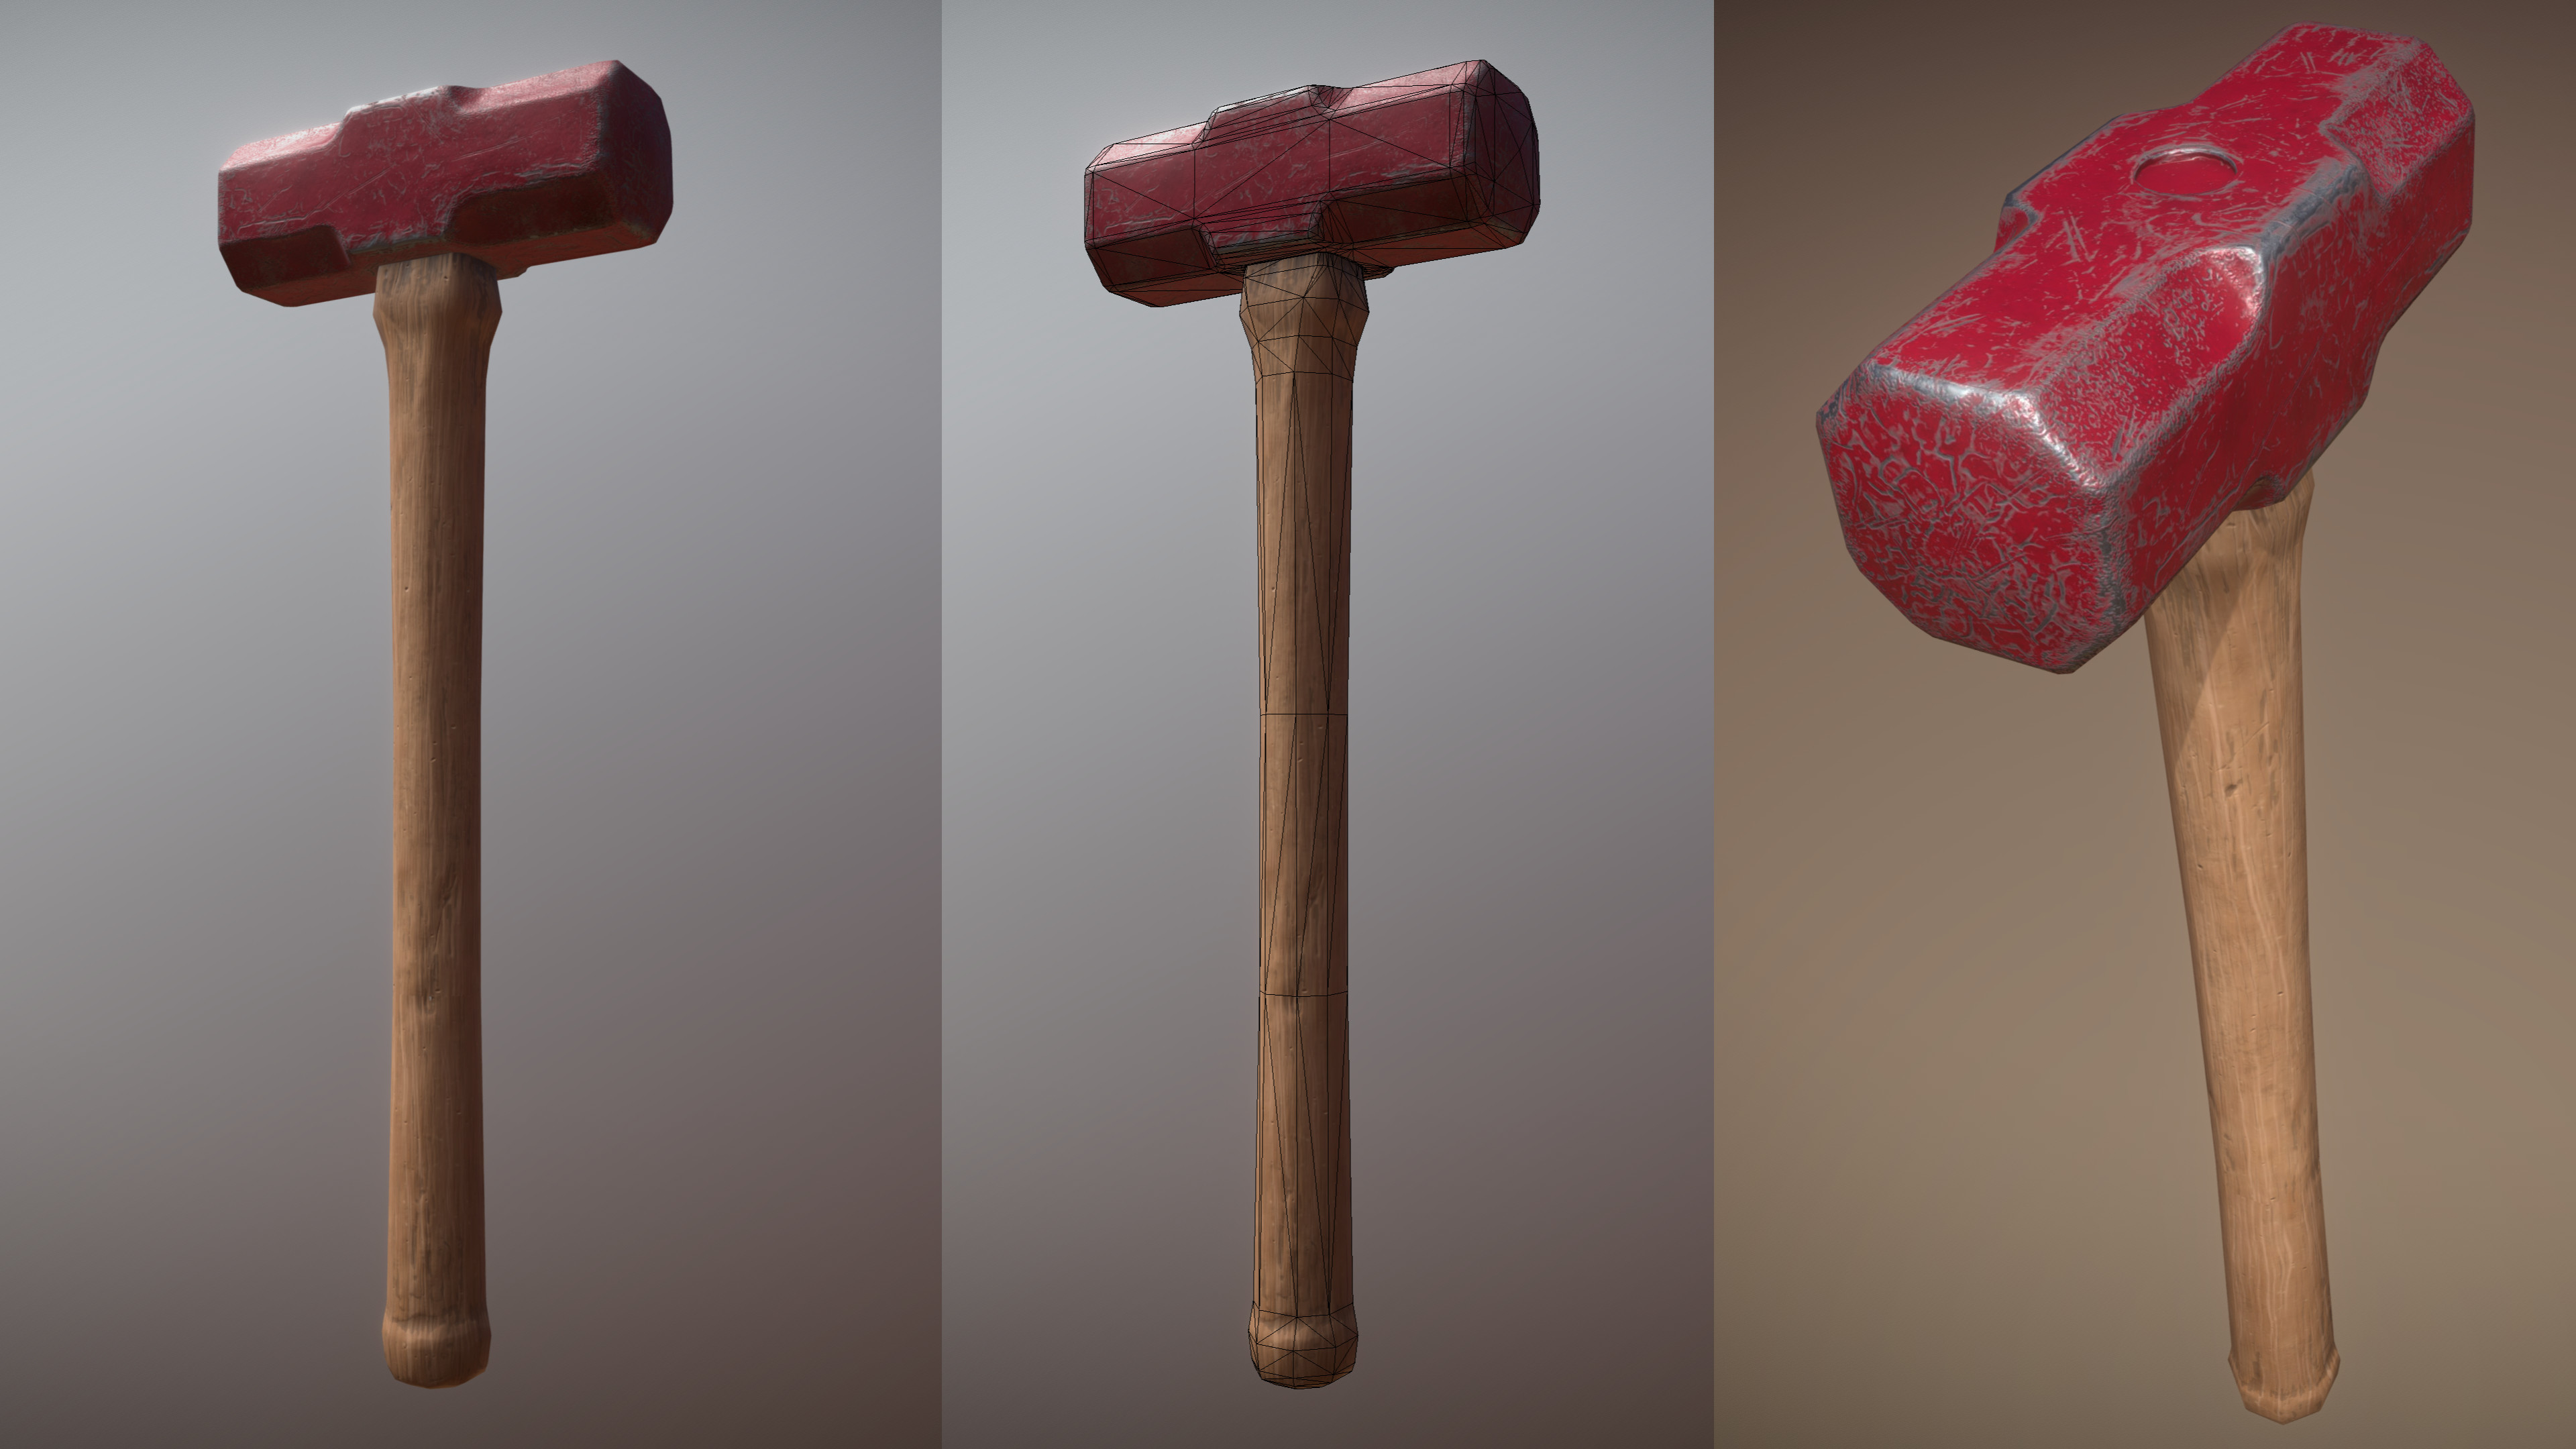 Worn Sledgehammer realistic model - images and wireframe